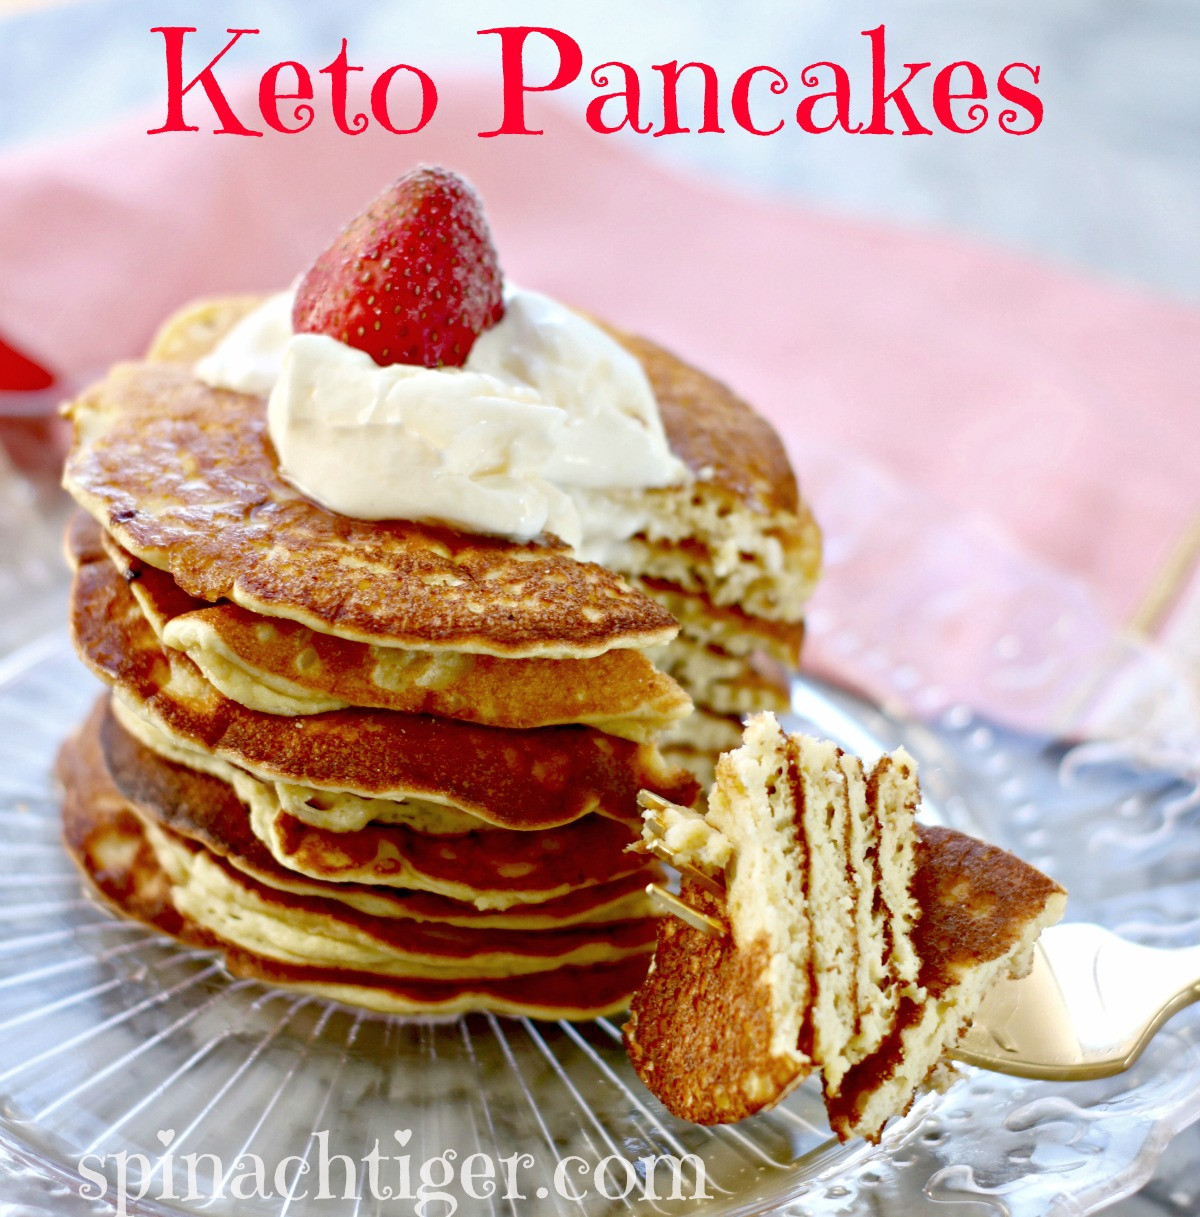 Best Keto Pancakes  How to Make Best Fluffy Keto Pancakes Low Carb Paleo